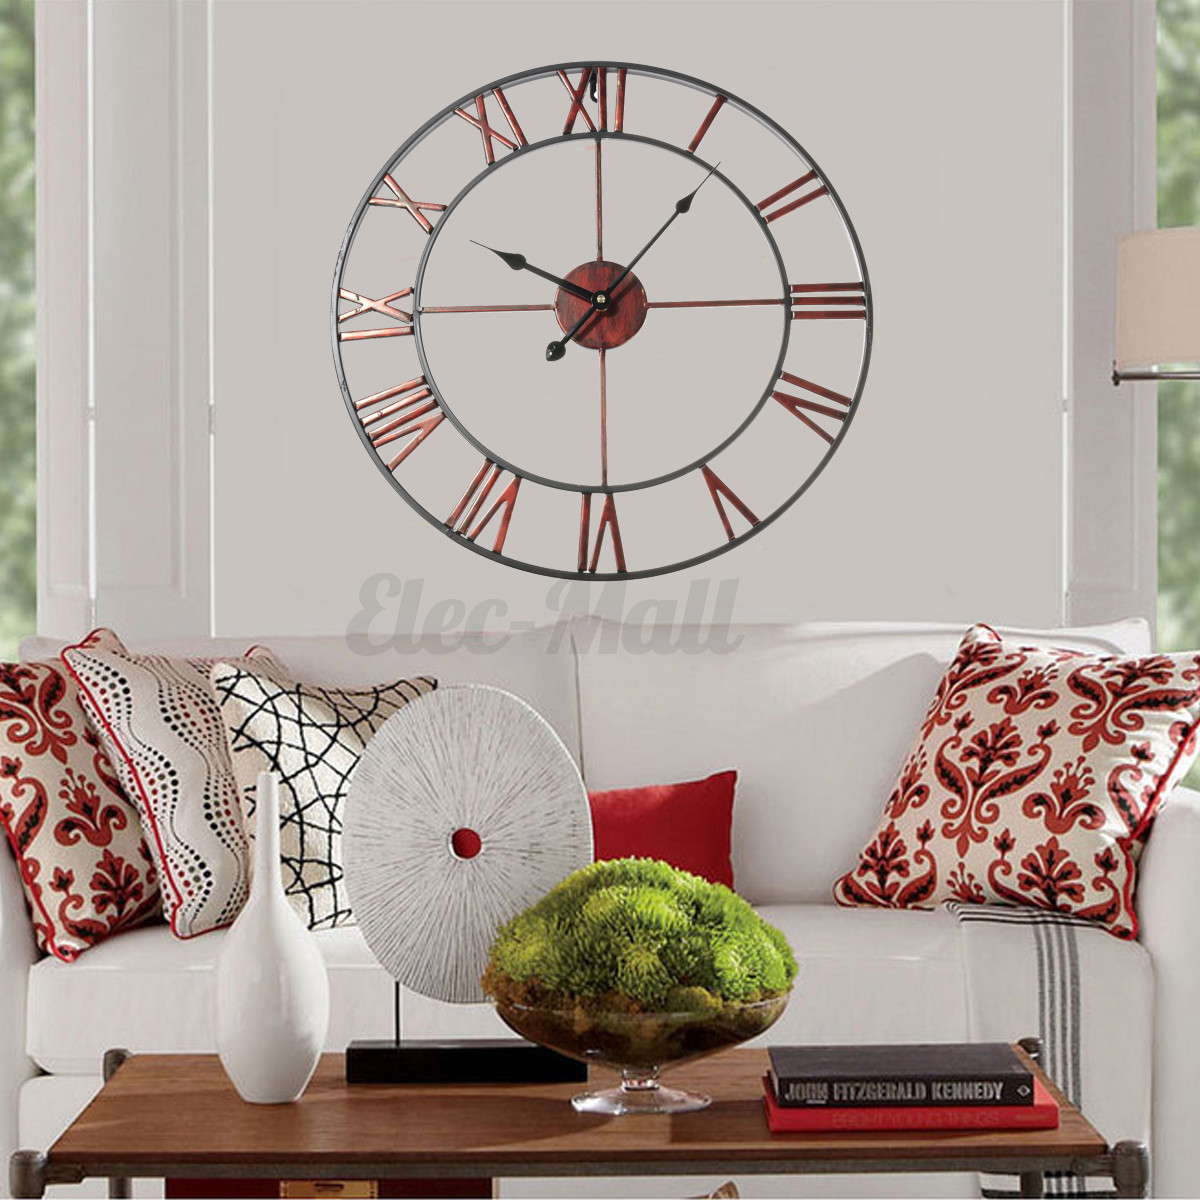 Classic Large Metal Wrought Iron Wall Clock Roman Numerals